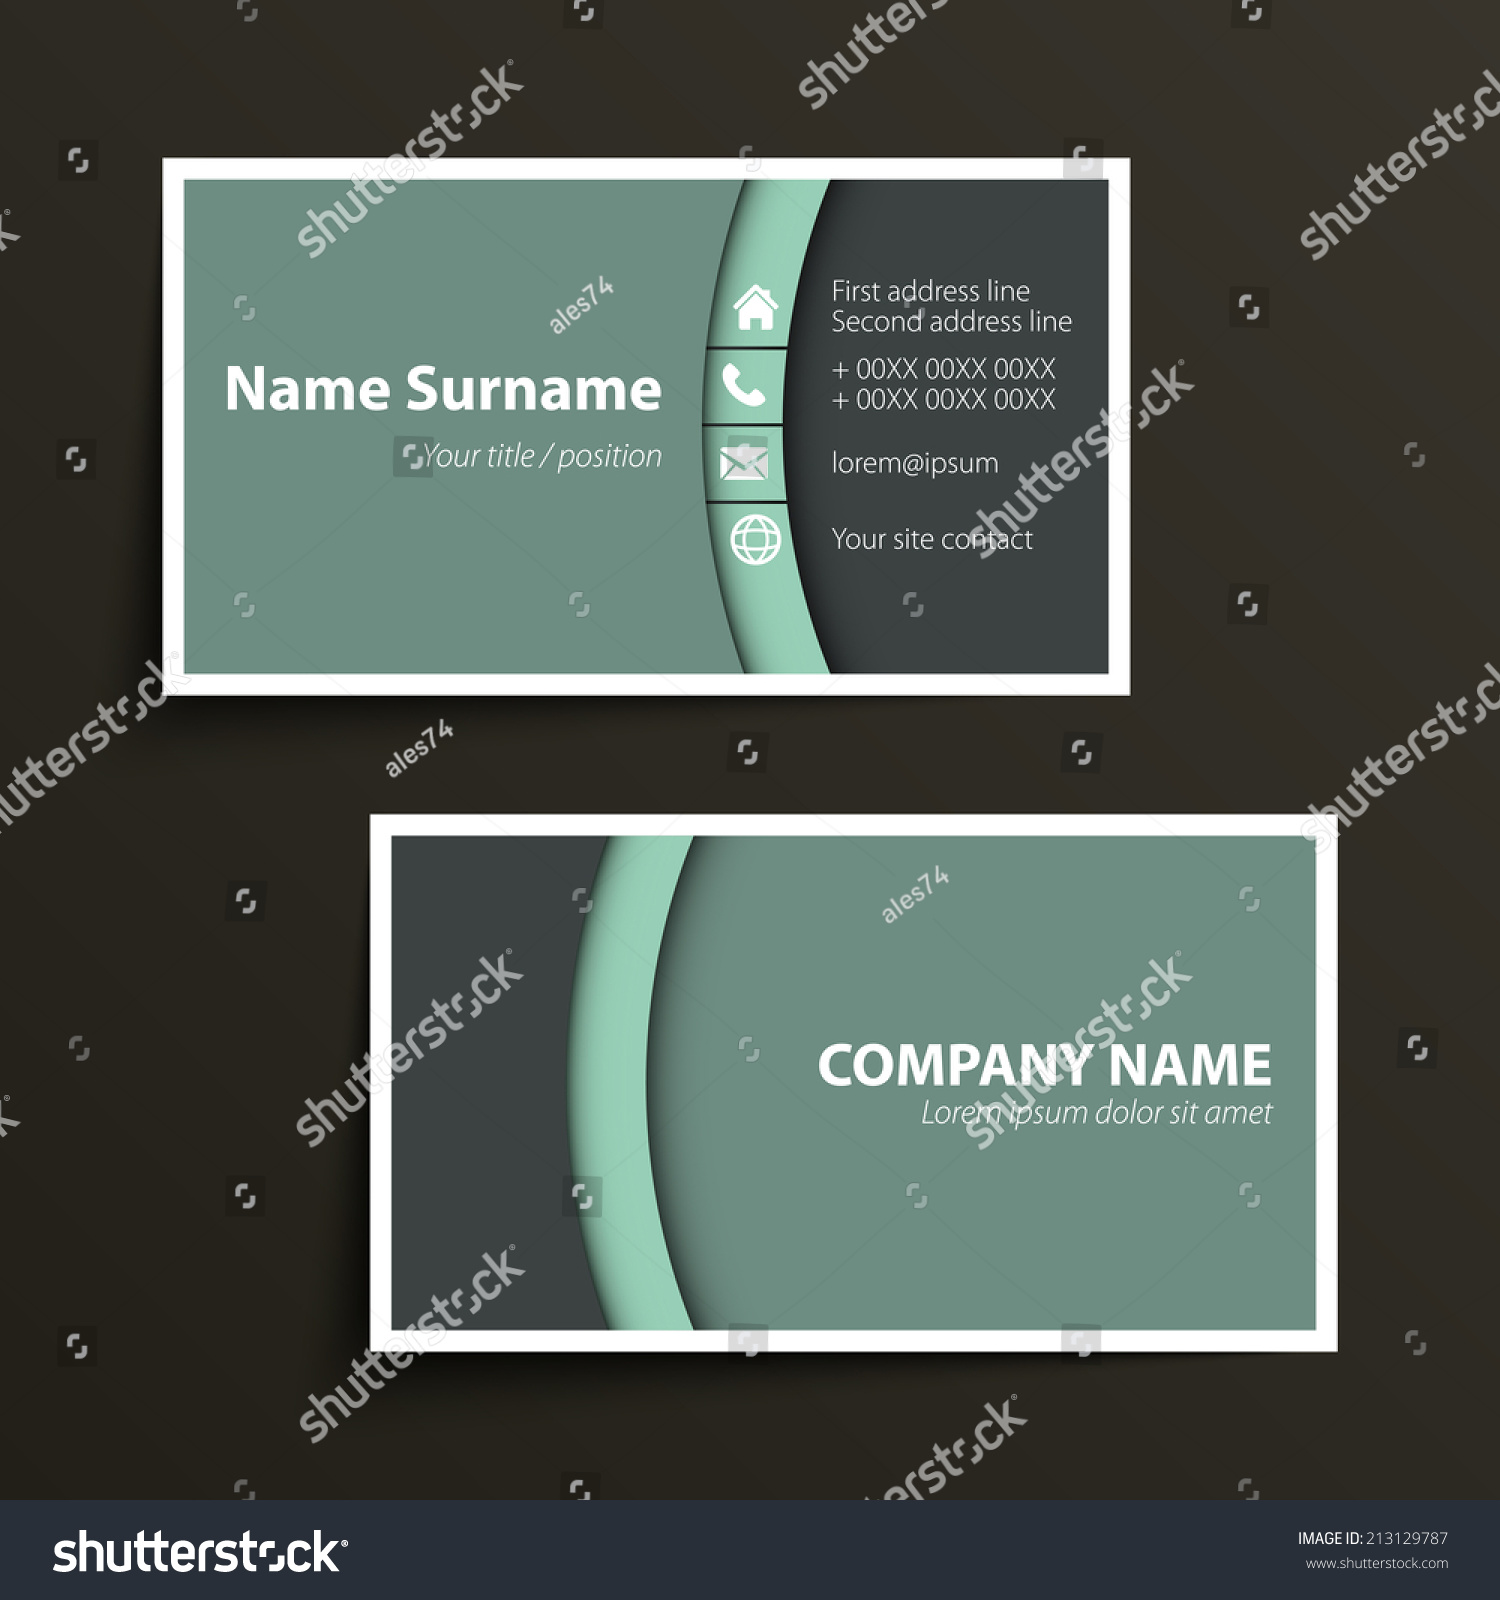 format of a business card